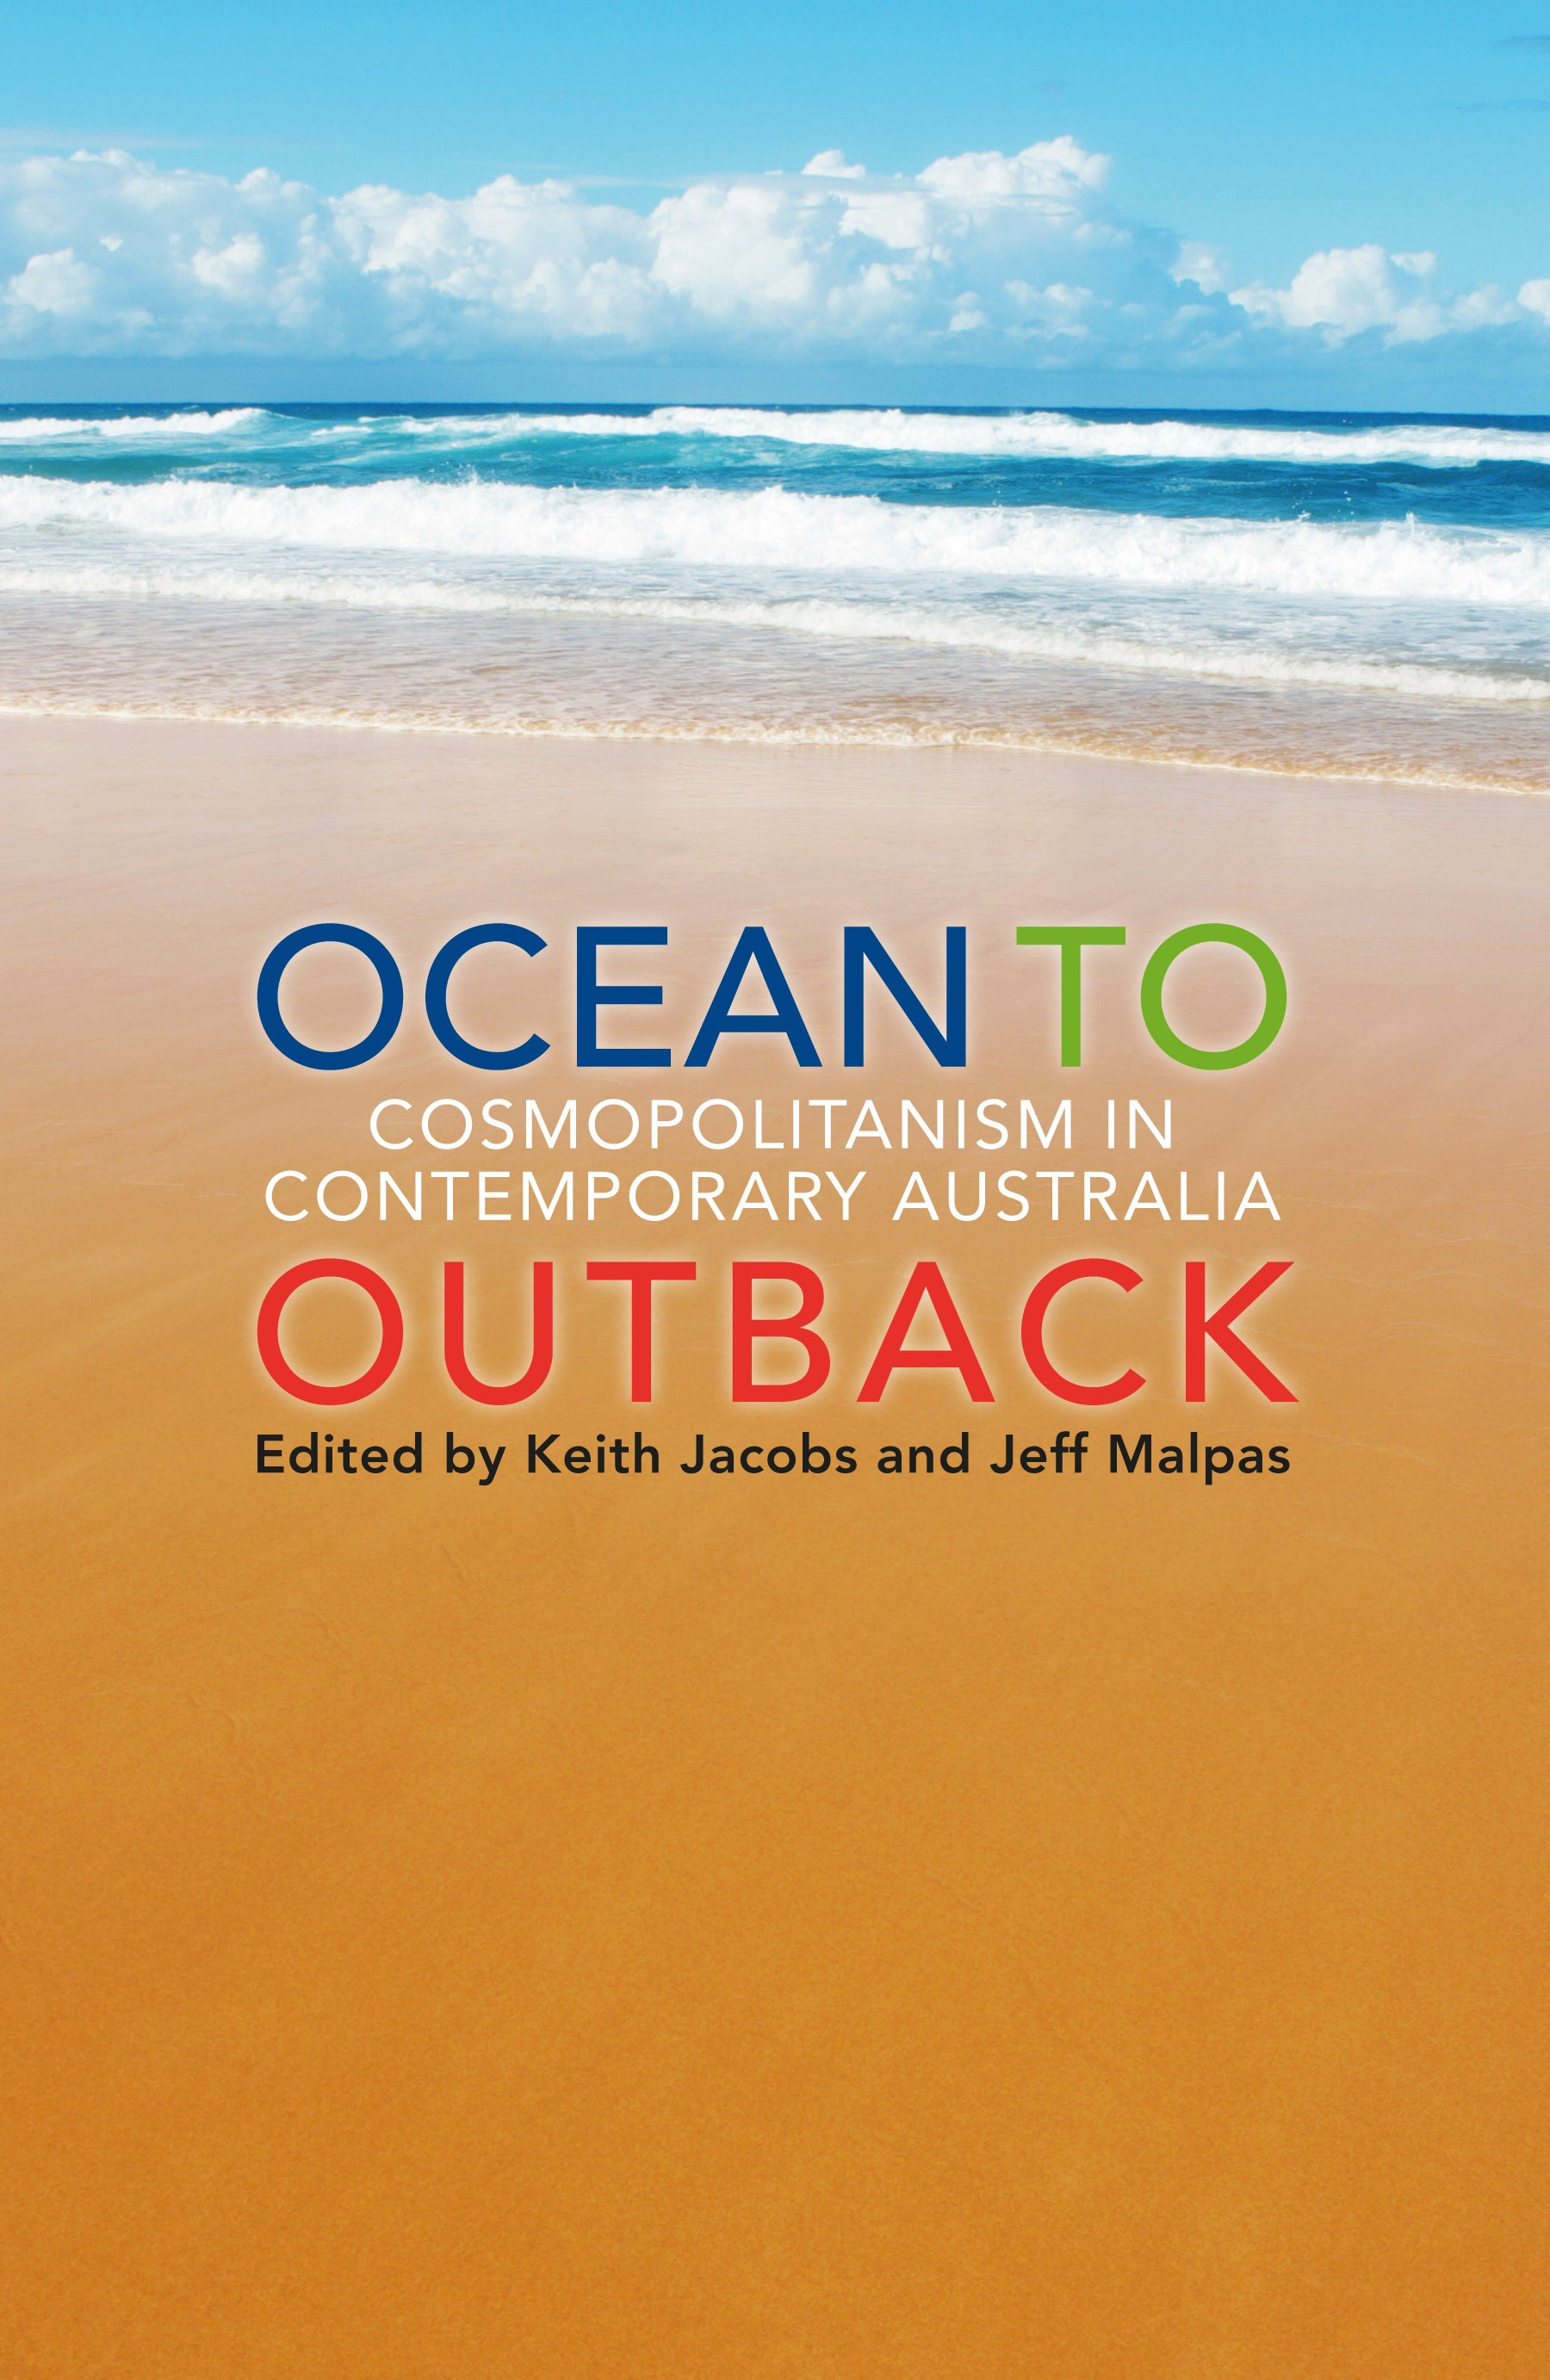 Ocean to outback : cosmopolitanism in contemporary Australia